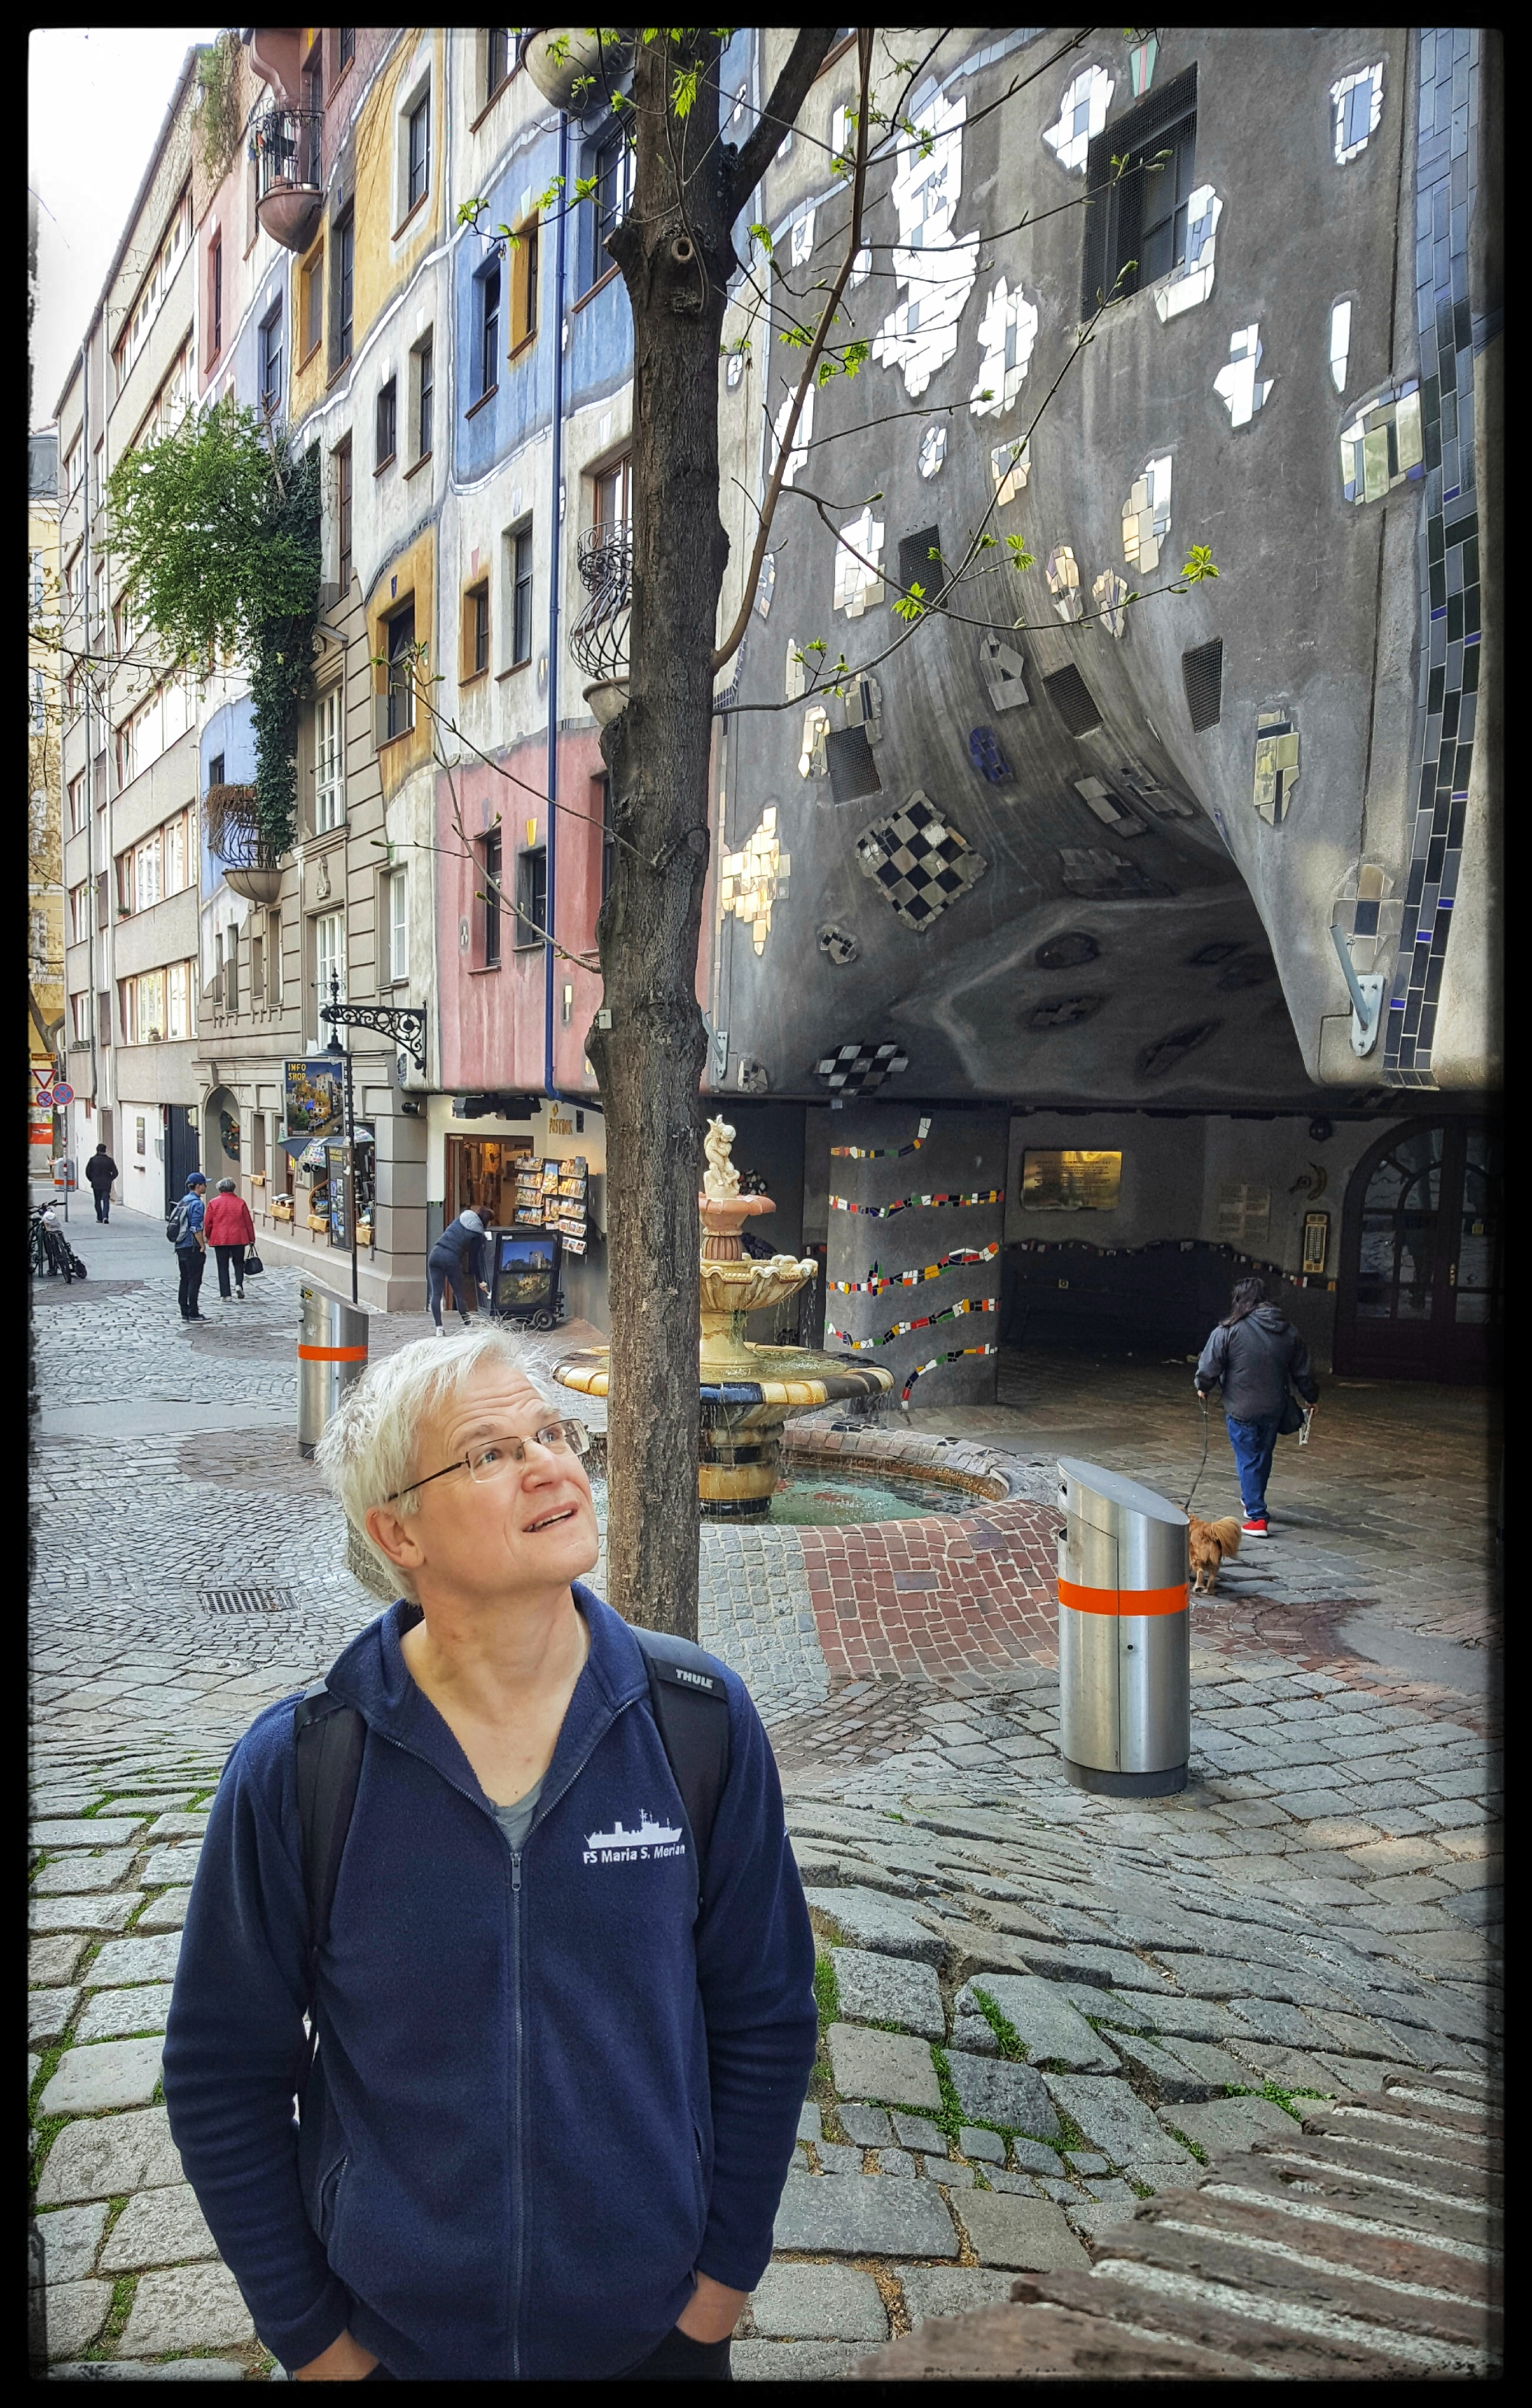 Andreas at Hundertwasserhaus. Photo by Dragonfly Leathrum